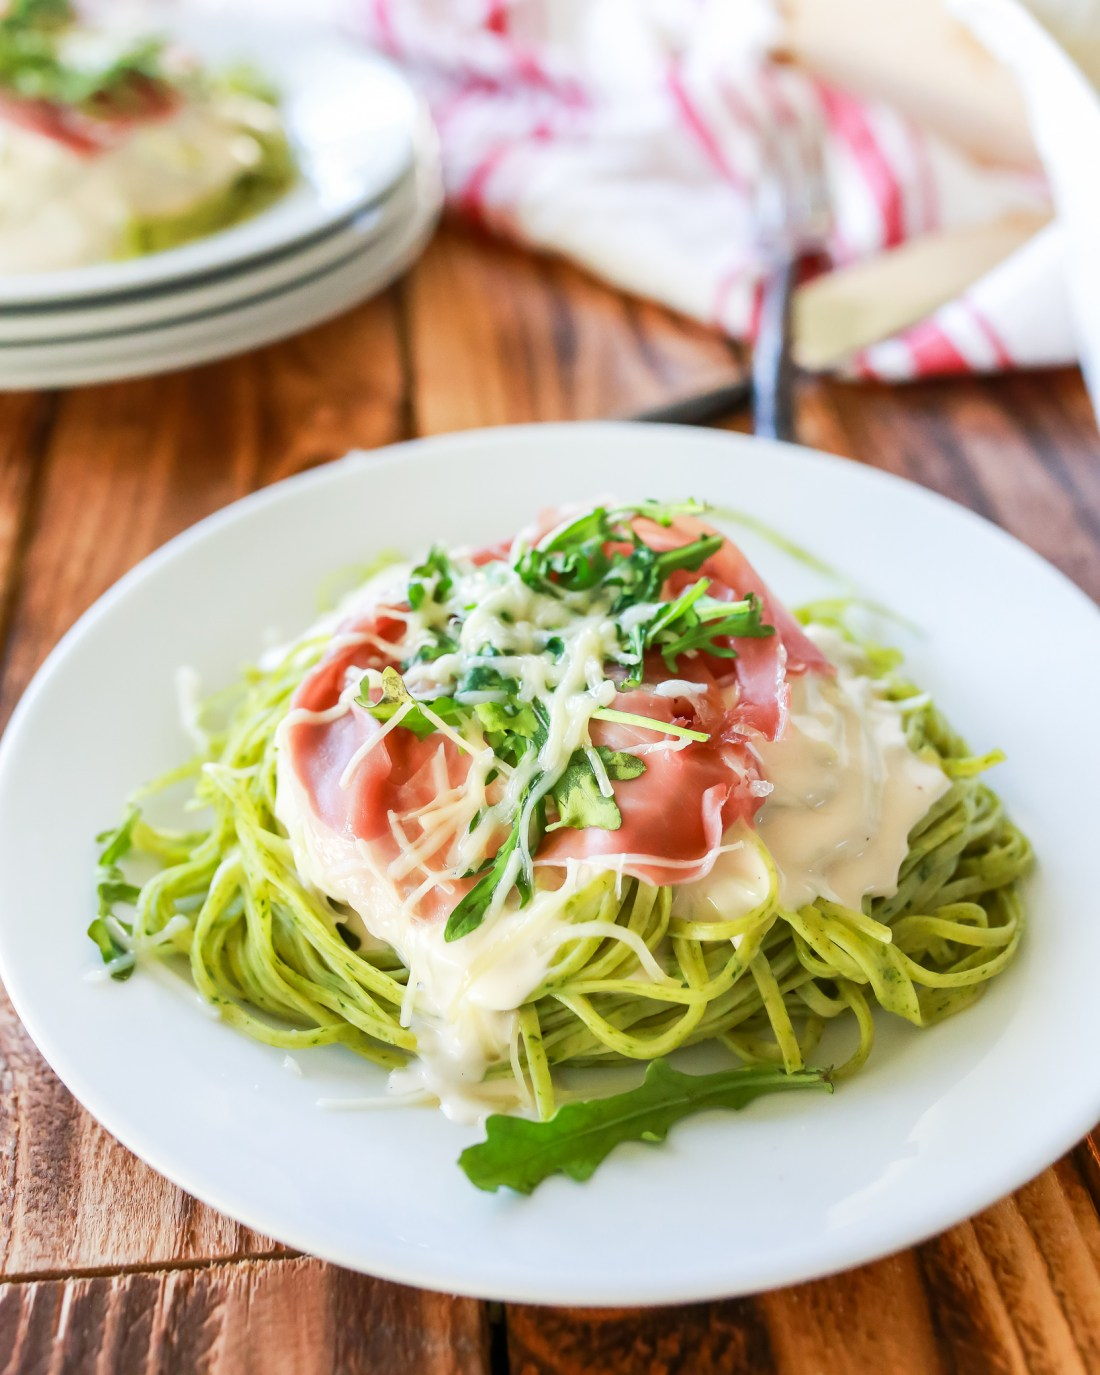 Pasta al Prosciutto è Spignaci is the fancy way of saying Creamy Spinach Pasta topped with toasted prosciutto and baby arugula salad.